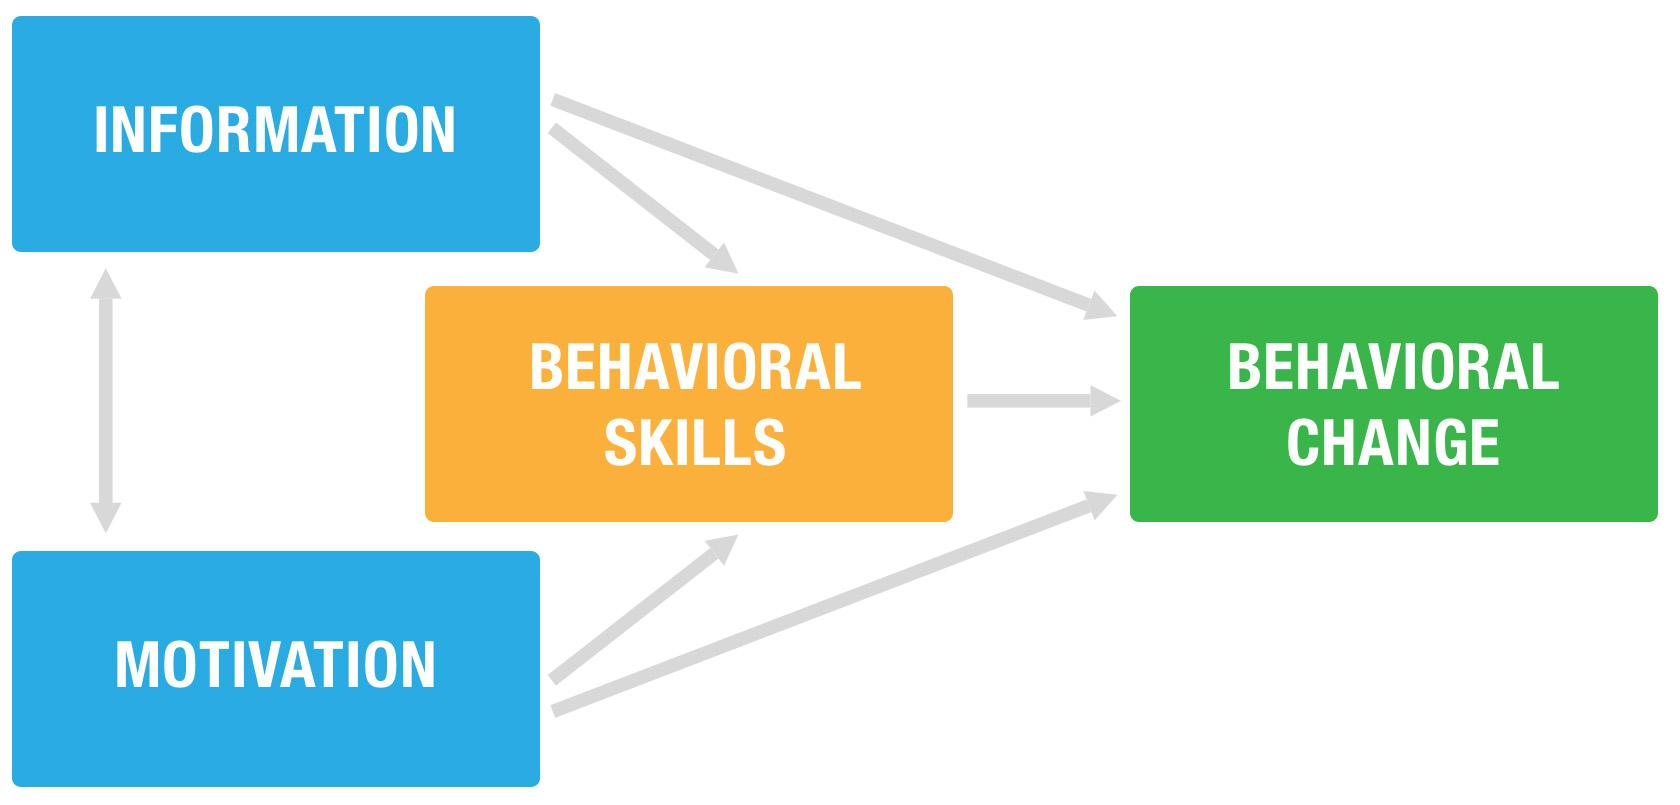 Simple model for behavior change